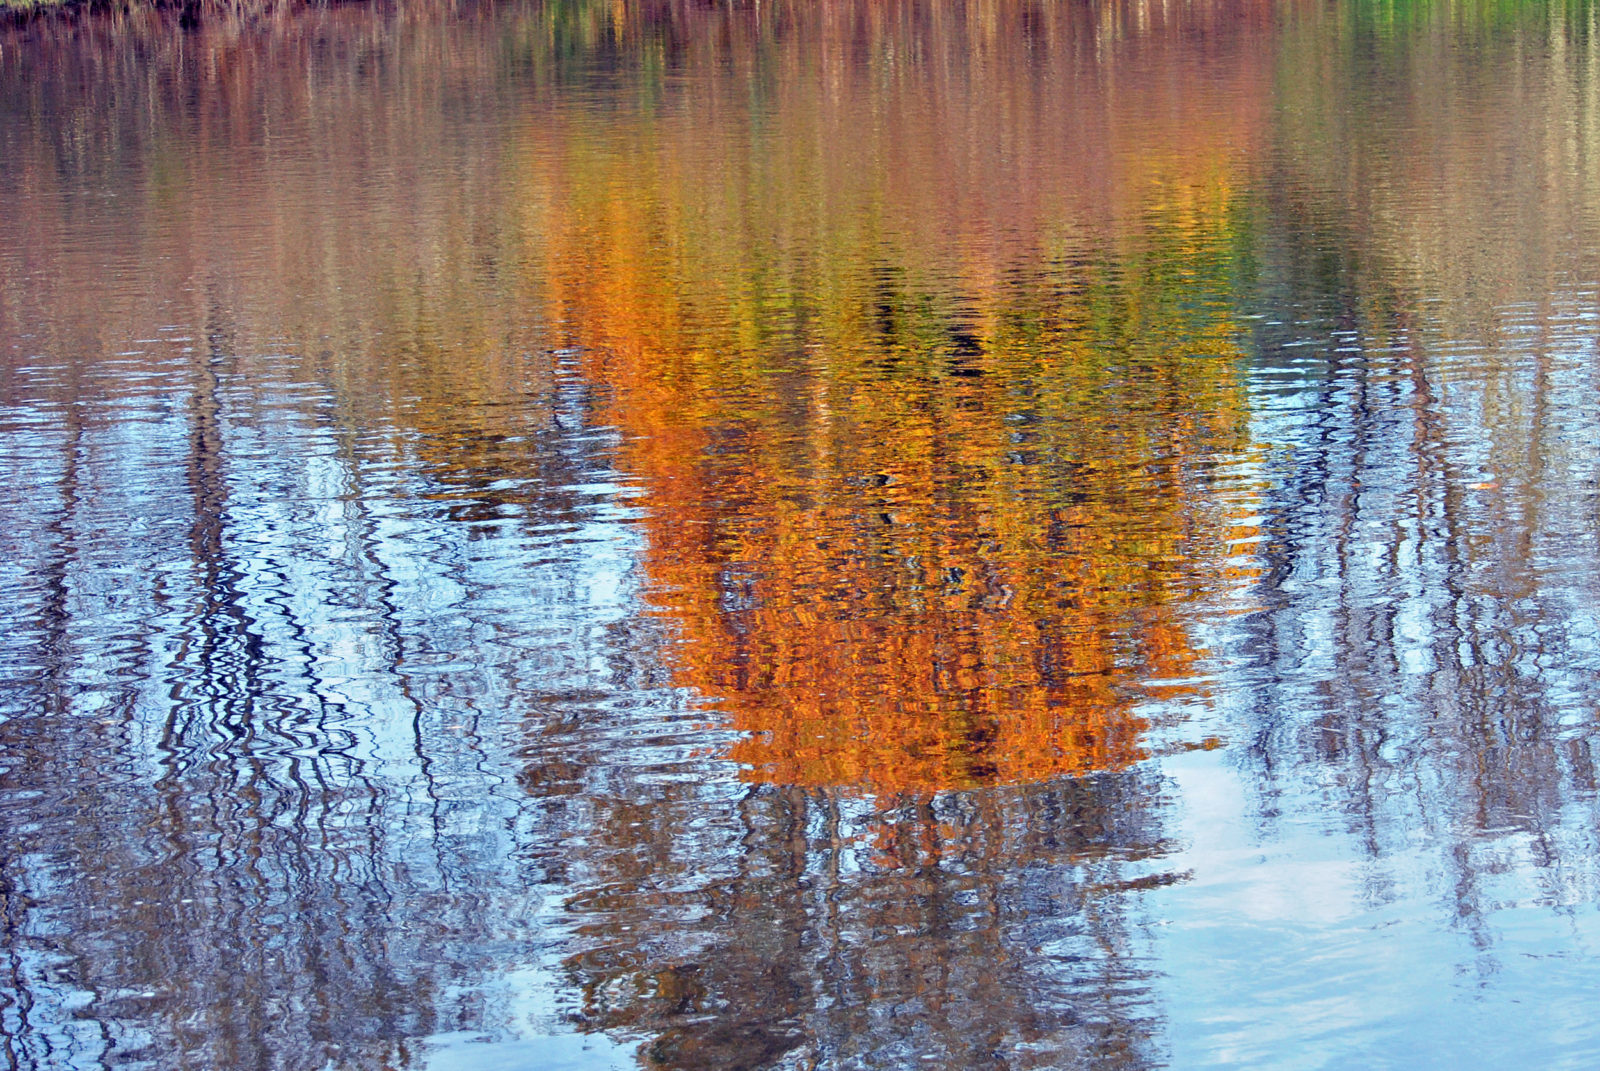 Colorful reflections on the river